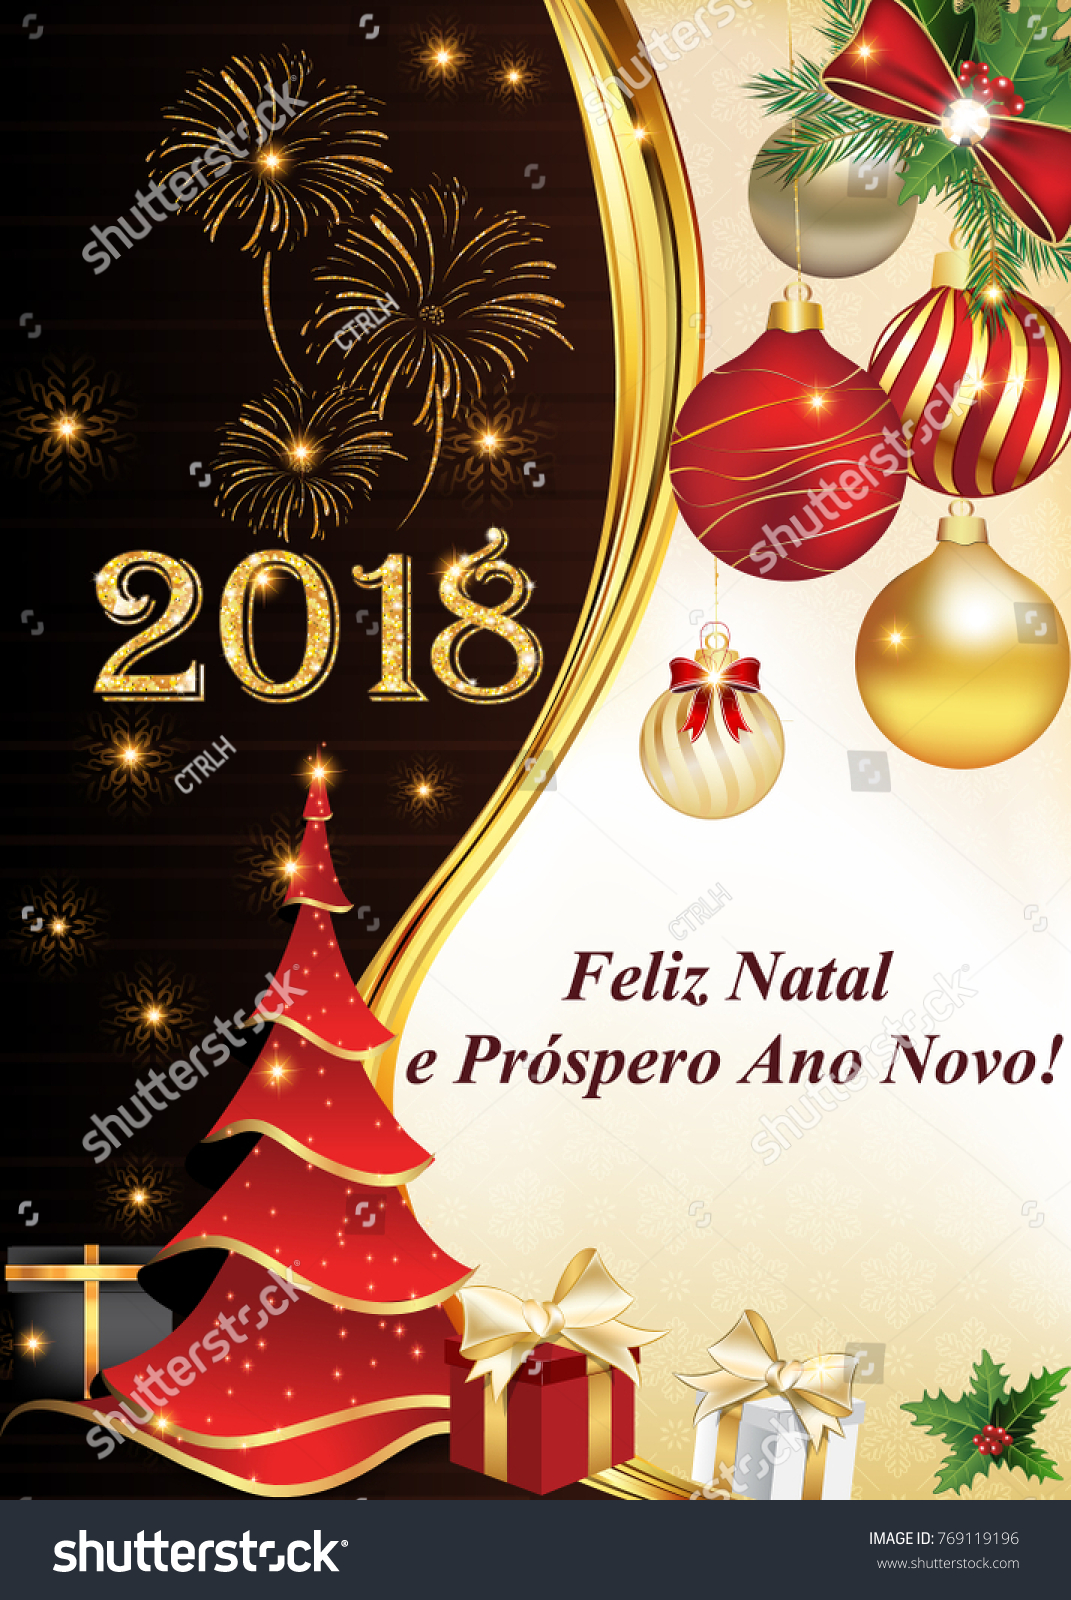 2018 Portuguese Business Christmas New Year Stock Illustration ...